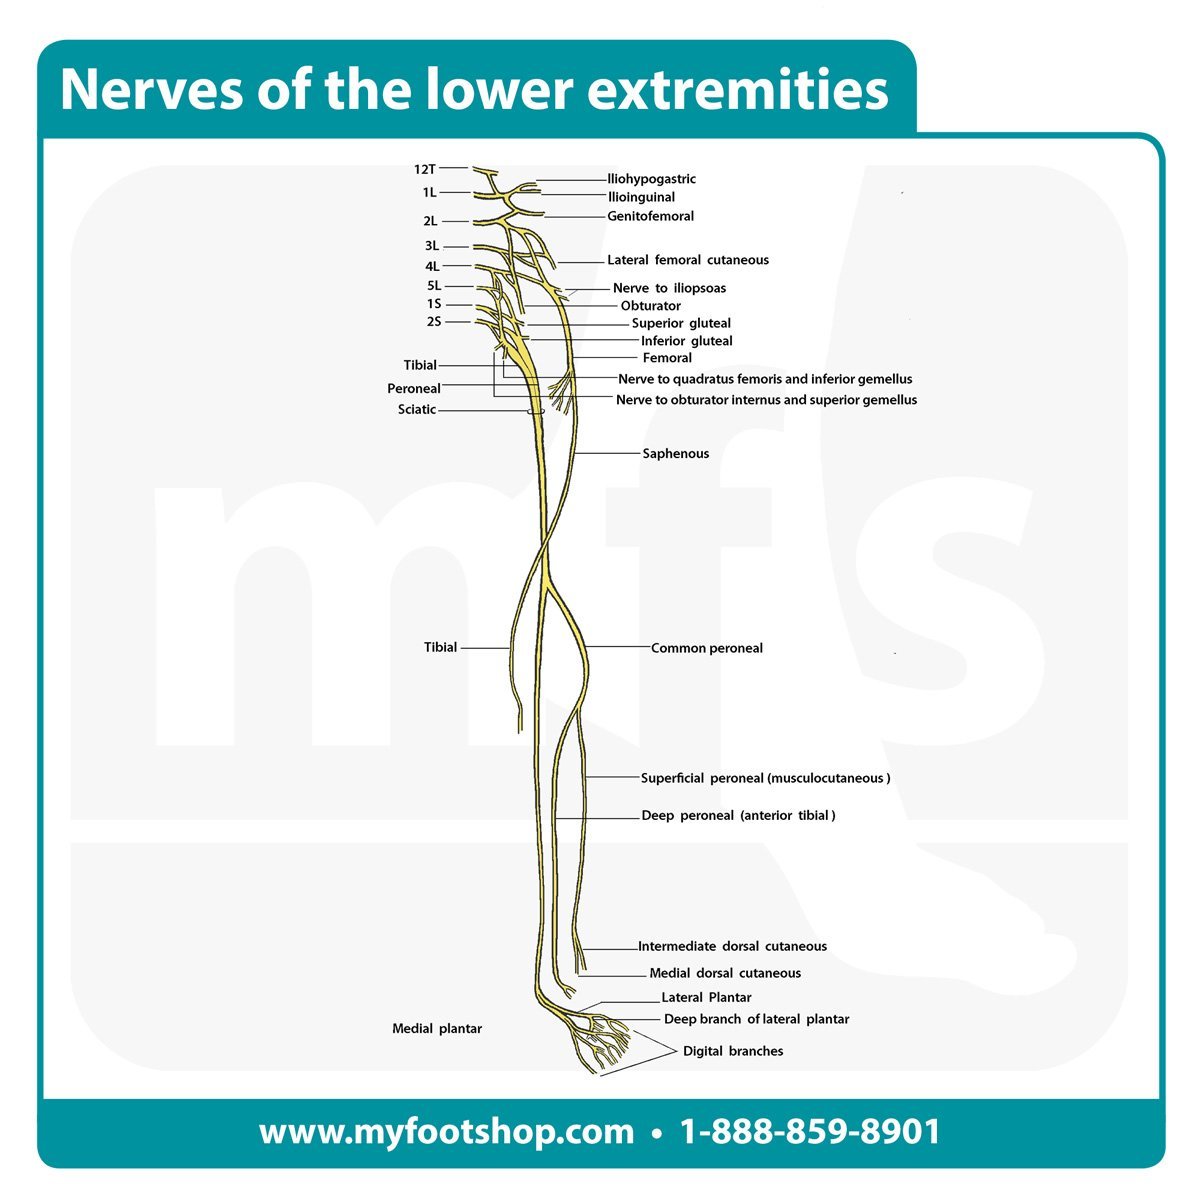 image of the nerves of the lower extremities